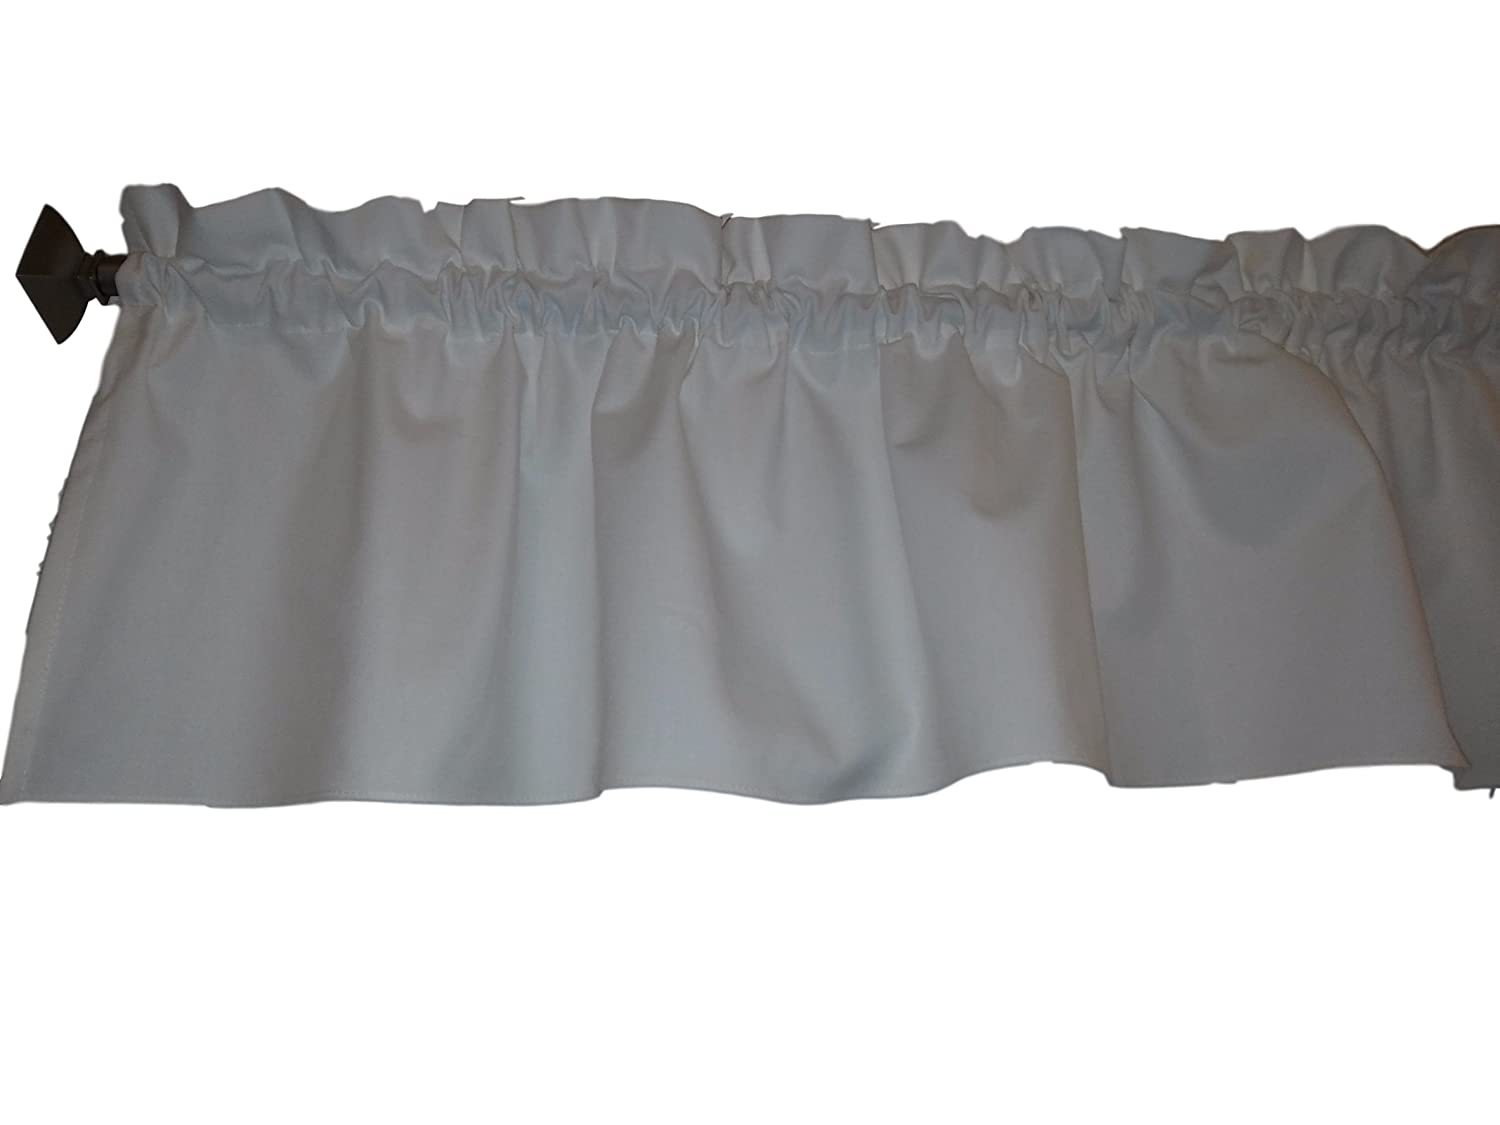 White Valance Curtain Solid Color. Ruffled on top. Window treatment. Window Decor. Kitchen, classroom, Kids, wide 56